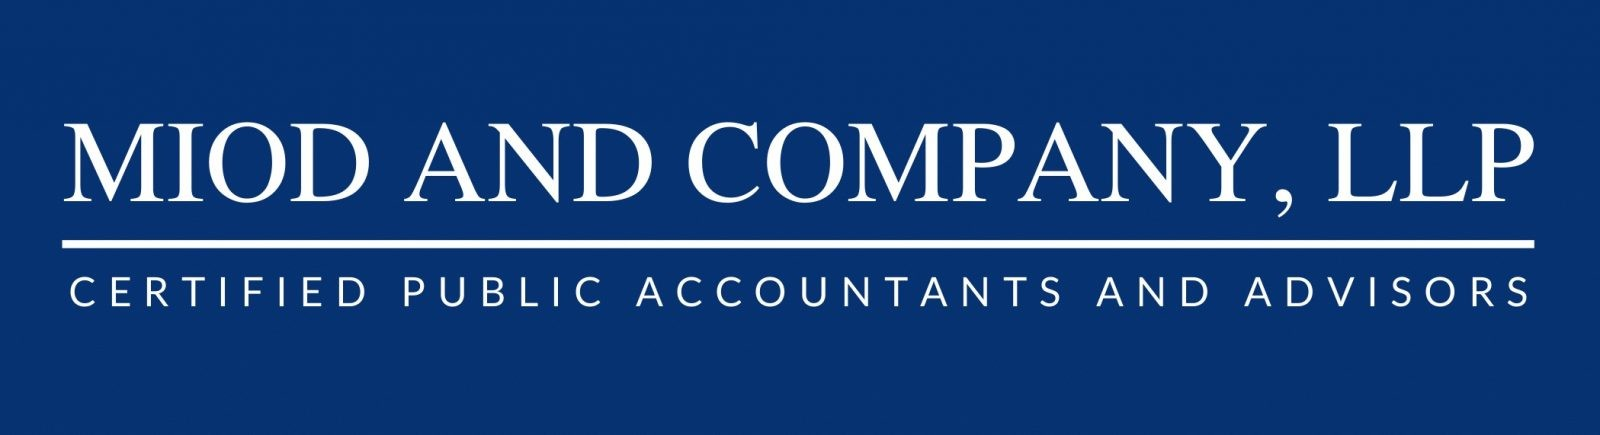 Miod and Company, LLP